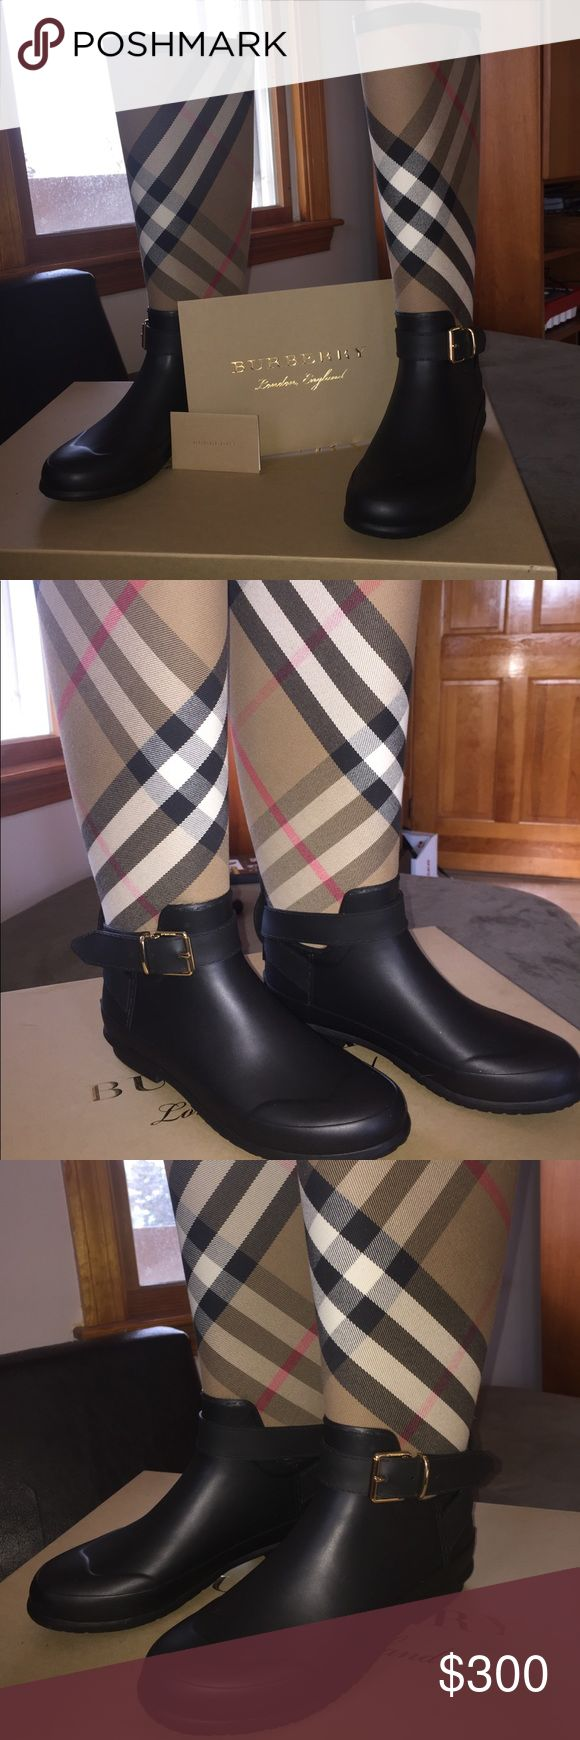 Burberry check and rubber rain boots. Authentic Burberry rain boots with card of authenticity and original burberry box. In new condition! Never worn, i am selling them because i received them as a gift but they are too big on me. They are beautiful. With no damages they are basically new. Burberry Shoes Winter & Rain Boots